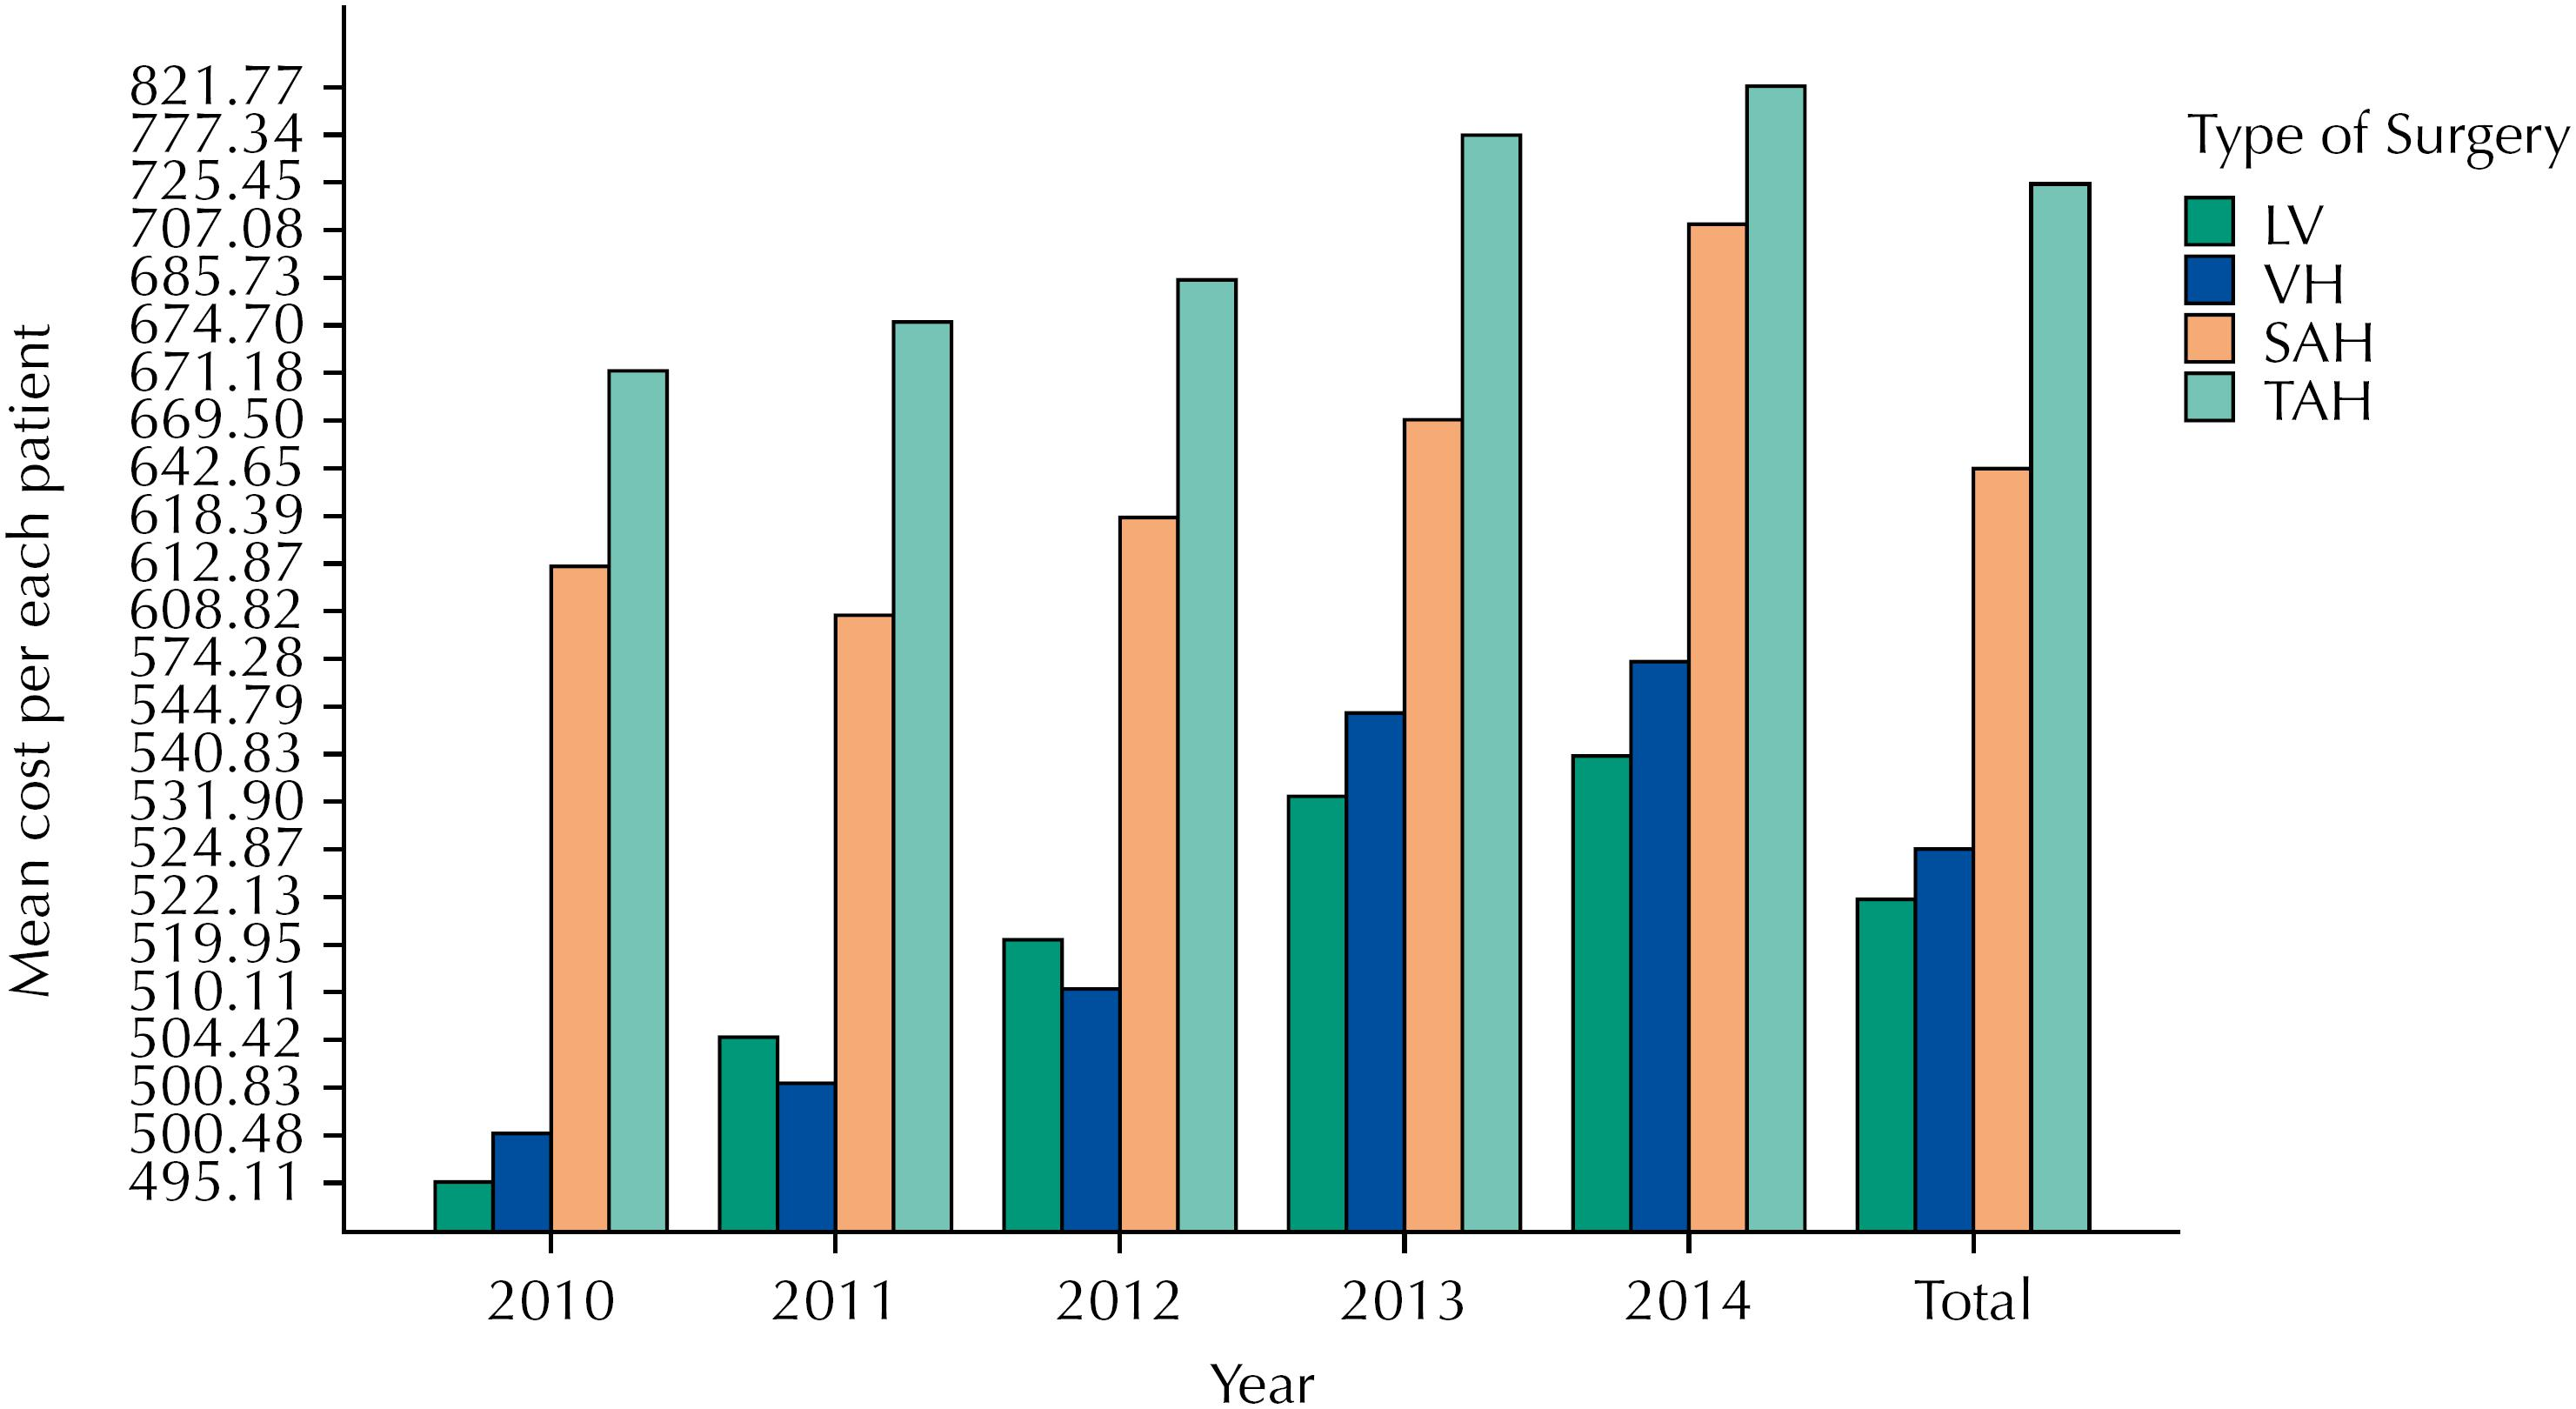 Mean cost per each patient that underwent each surgical approach, shown by year.